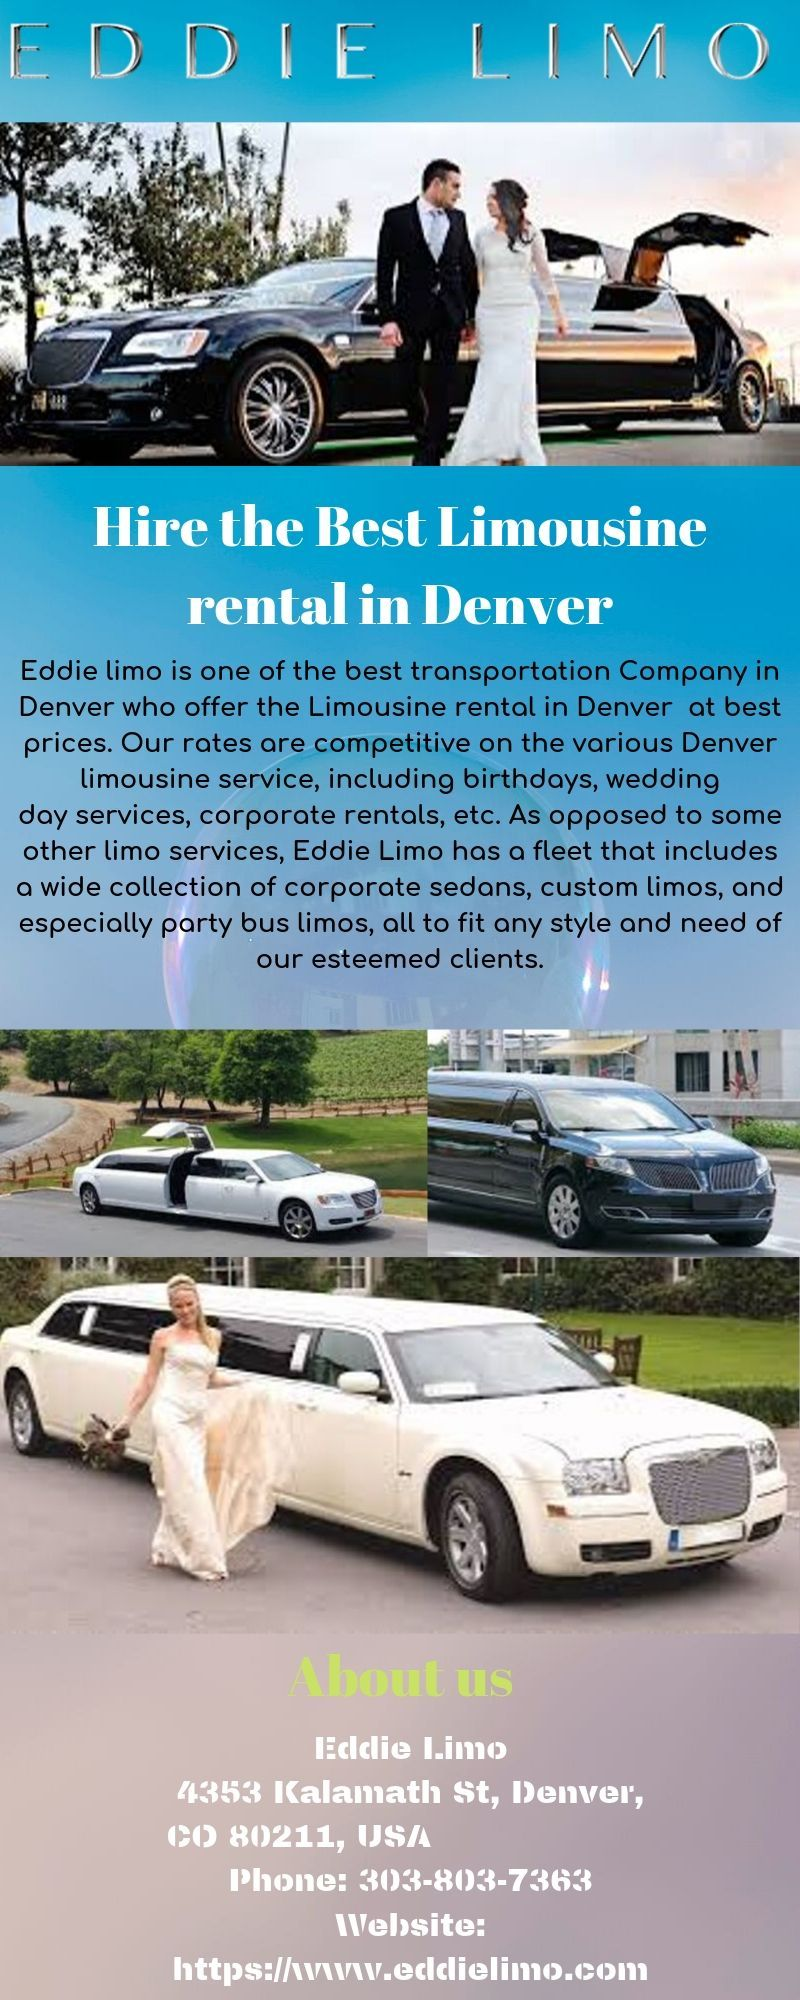 Eddie Limo Is One Of The Best Transportation Company In Denver Who Offer The Limousine Rental In Denver At Best P Limousine Rental Limousine Corporate Rentals